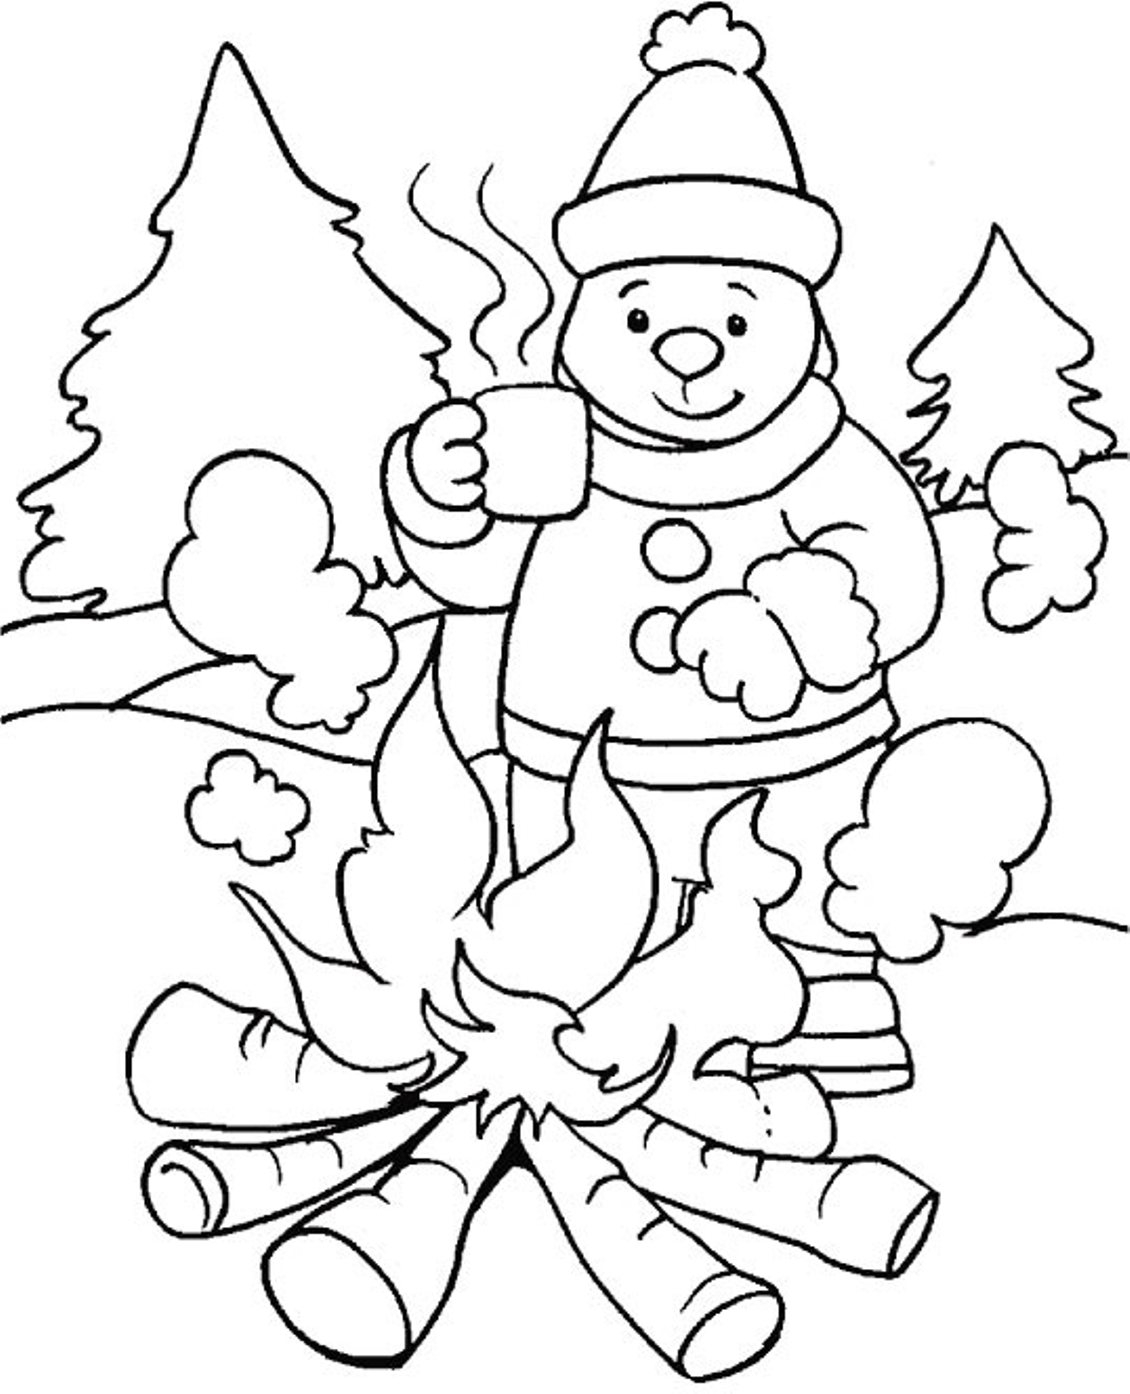 Winter Coloring Pages For Kids New Coloring Pages For Winter ...